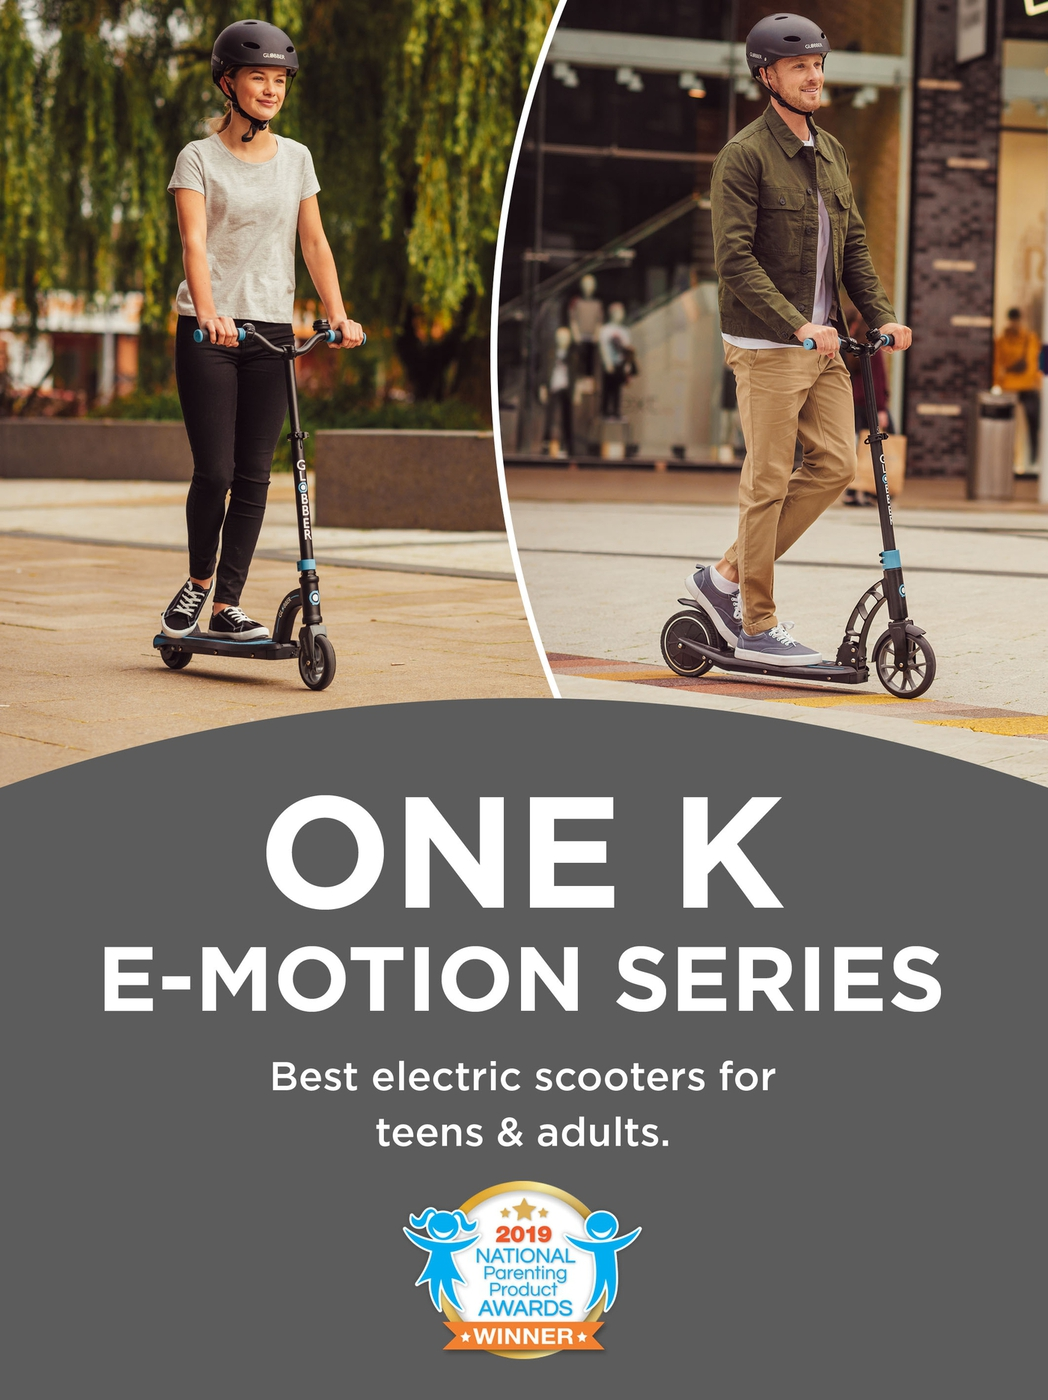 ONE-K-EMOTION-electric-scooters-for-teens-and-adults